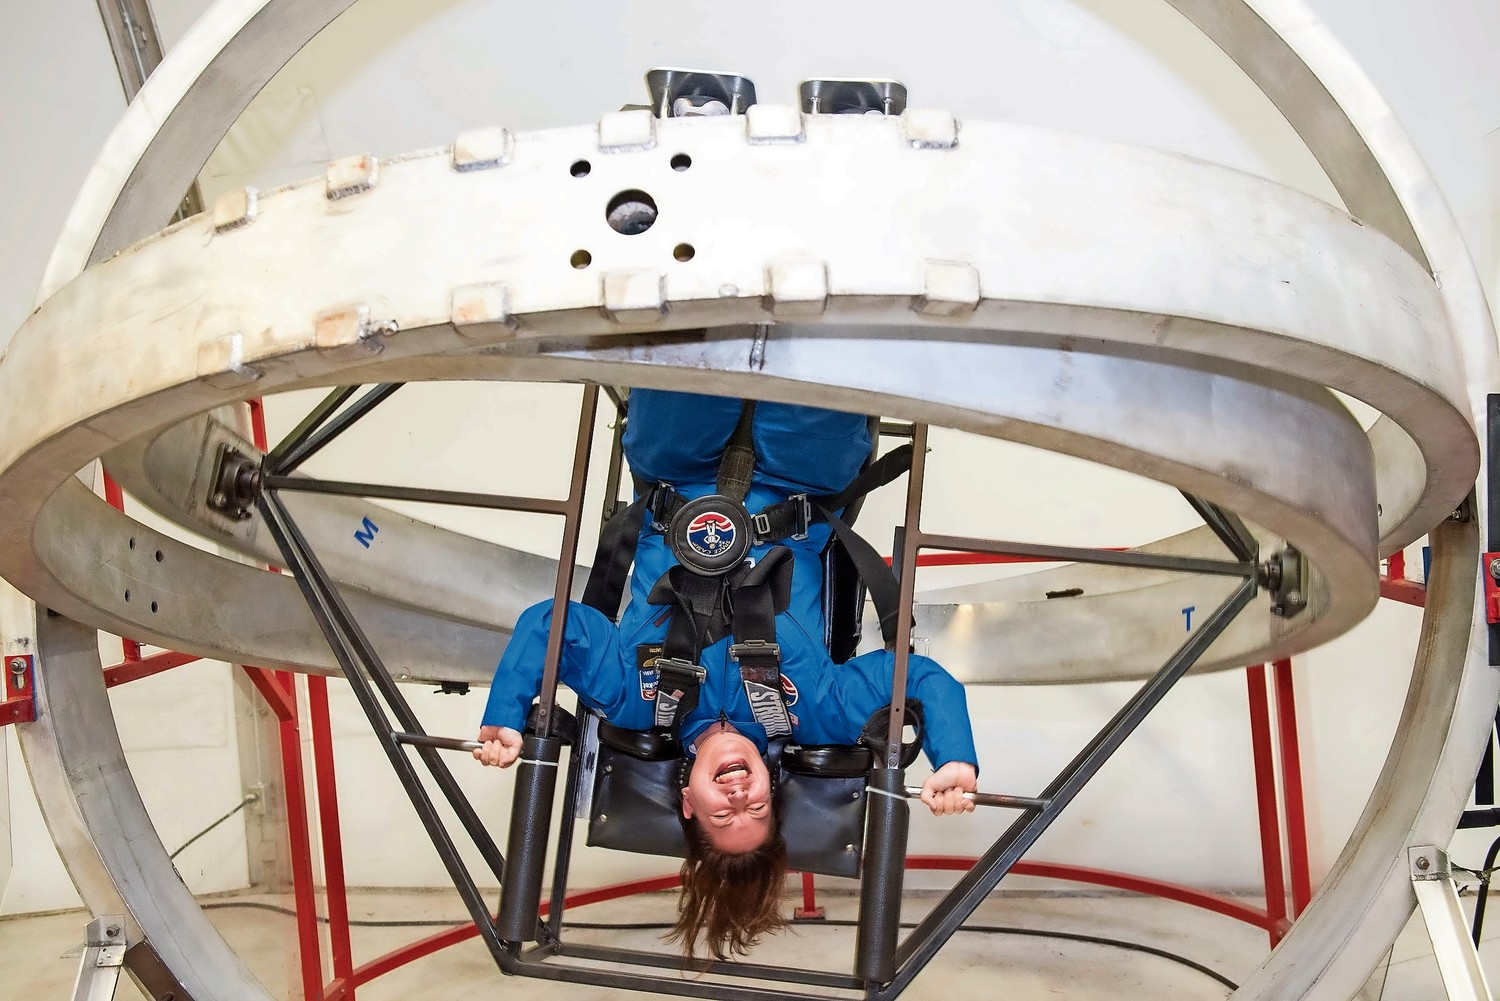 Carolina Castro, a science teacher at Riverdale/Kingsbridge Academy, hangs upside down in a multi-axis trainer during the program Honeywell Educators at Space Academy in Huntsville, Alabama. An essential part of astronaut training, the multi-axis trainer is meant to simulate what would happen if a spacecraft went into an uncontrolled spin in space.